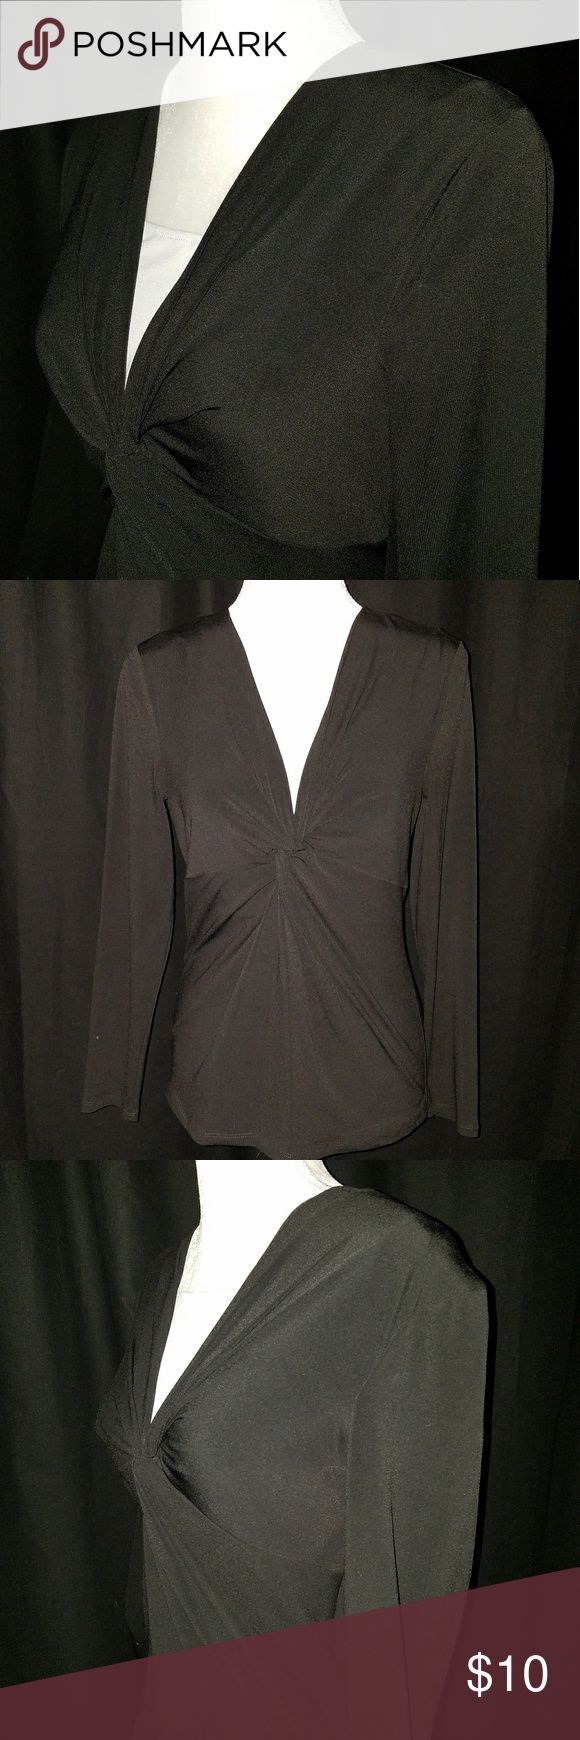 🆕 Josephine Chaus Black Top Black with white top by Josephine Chaus in Size Medium. Nice dressy top made of 94% Polyester and 6% Spandex. Josephine Chaus Tops Blouses